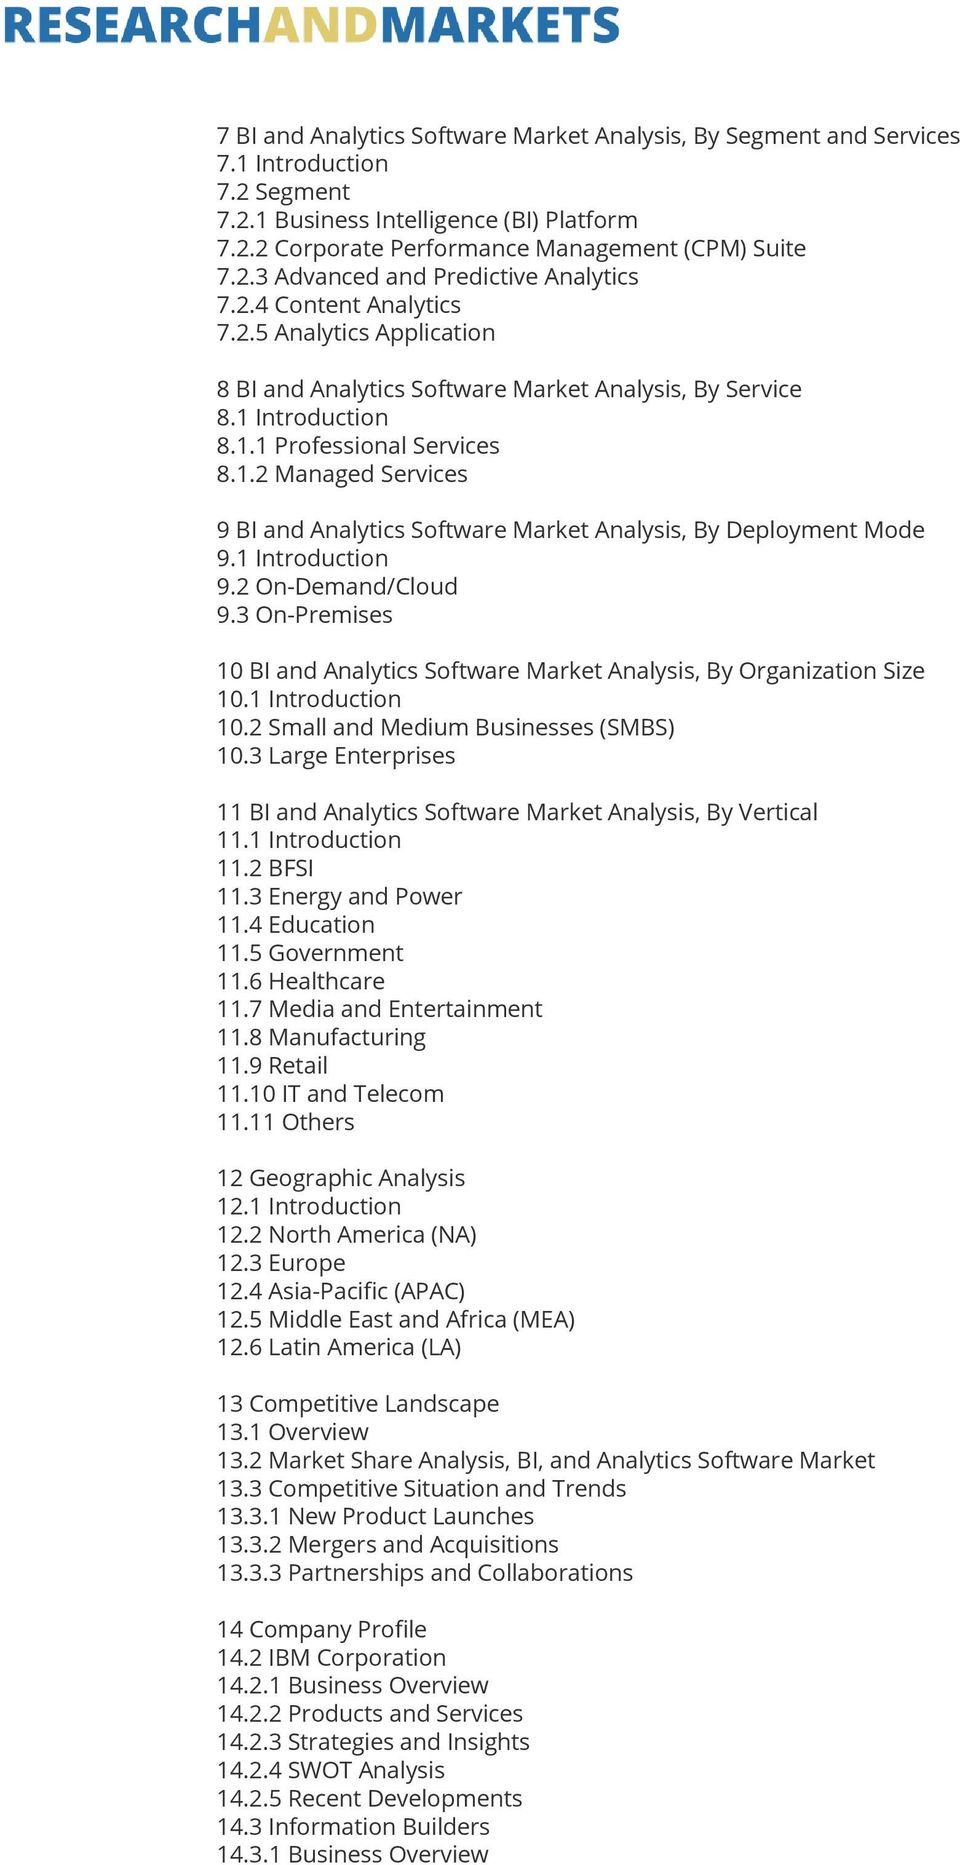 1 Introduction 9.2 On-Demand/Cloud 9.3 On-Premises 10 BI and Analytics Software Market Analysis, By Organization Size 10.1 Introduction 10.2 Small and Medium Businesses (SMBS) 10.